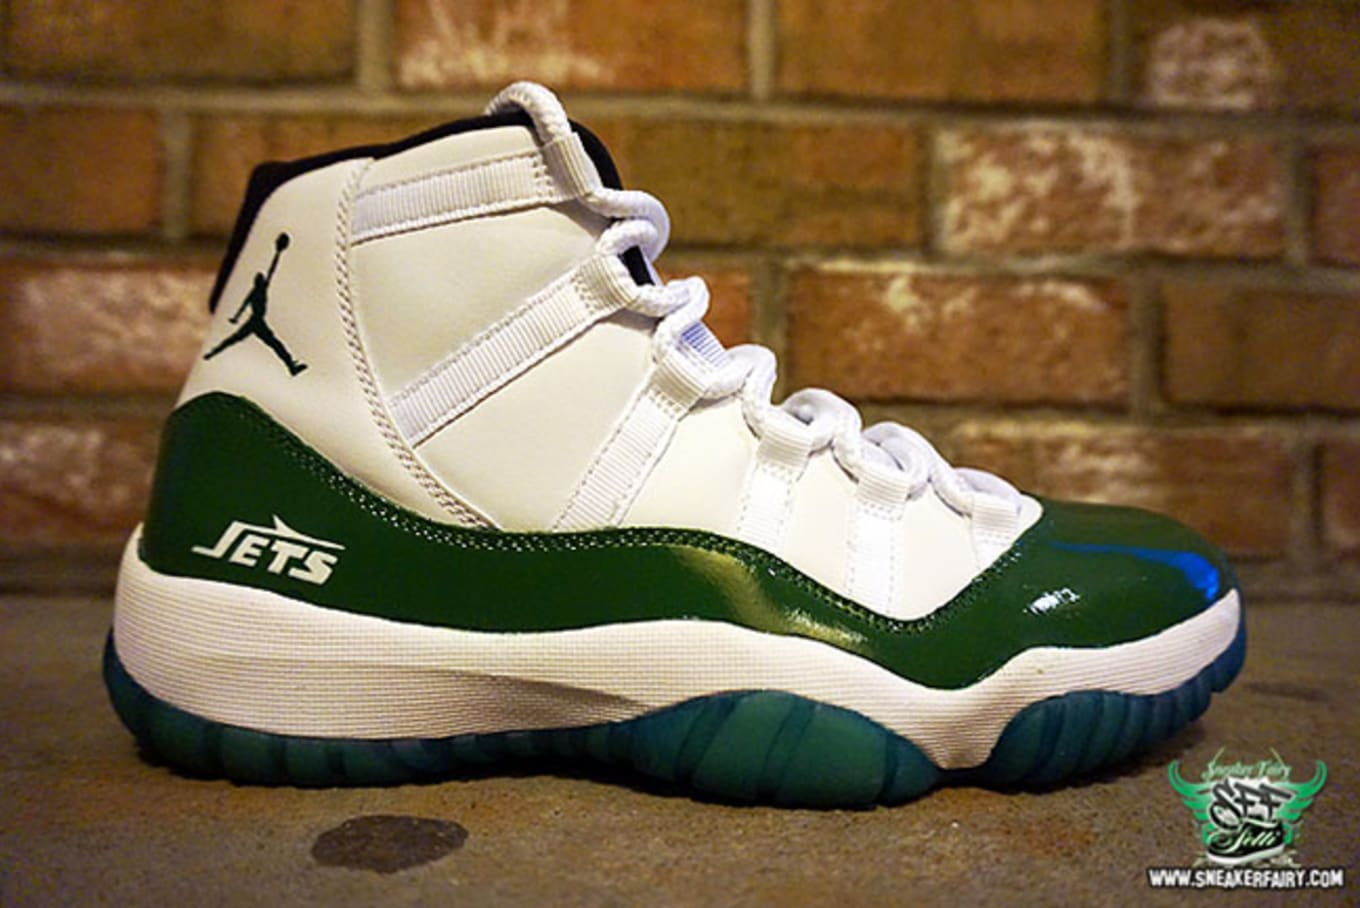 611d73b60f2 Air Jordan XI 11 New York Jets Custom by Sneaker Fairy